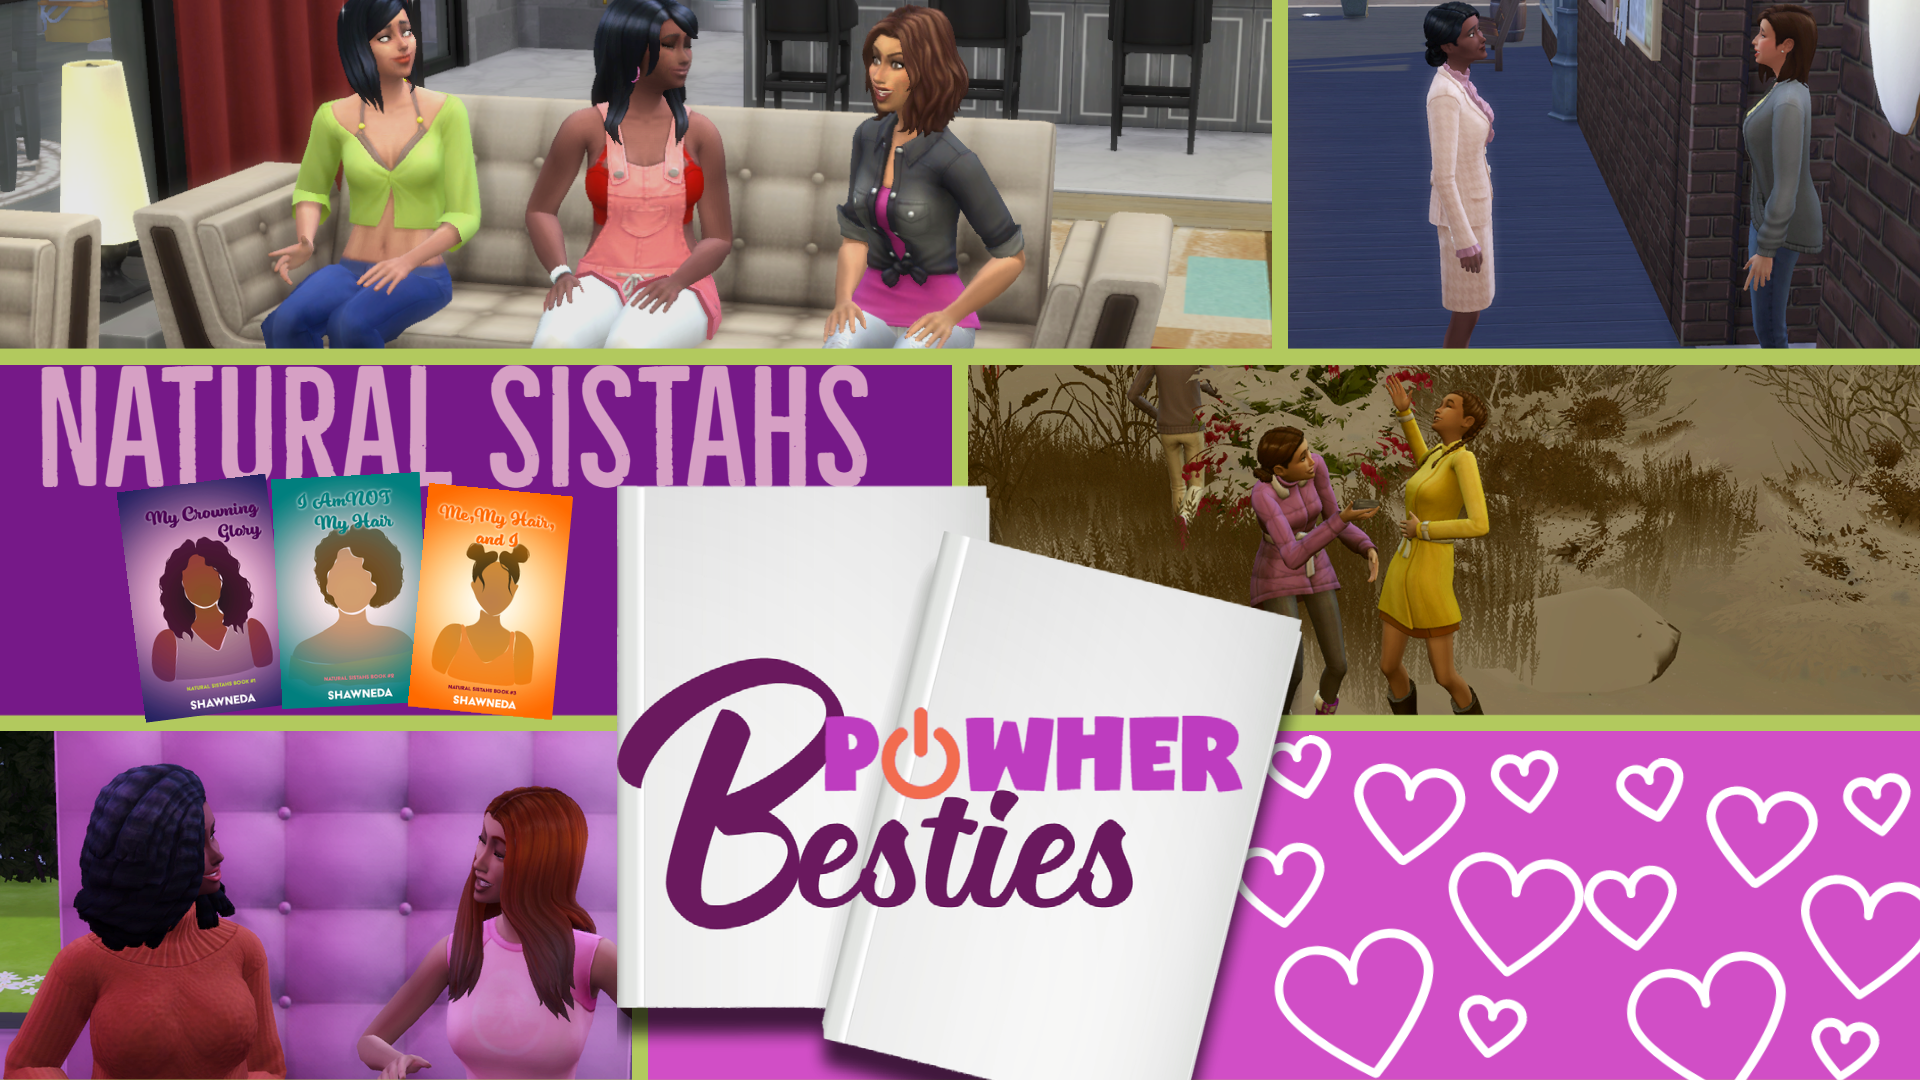 Transition Screen for Natural Sistahs PowHer Besties series